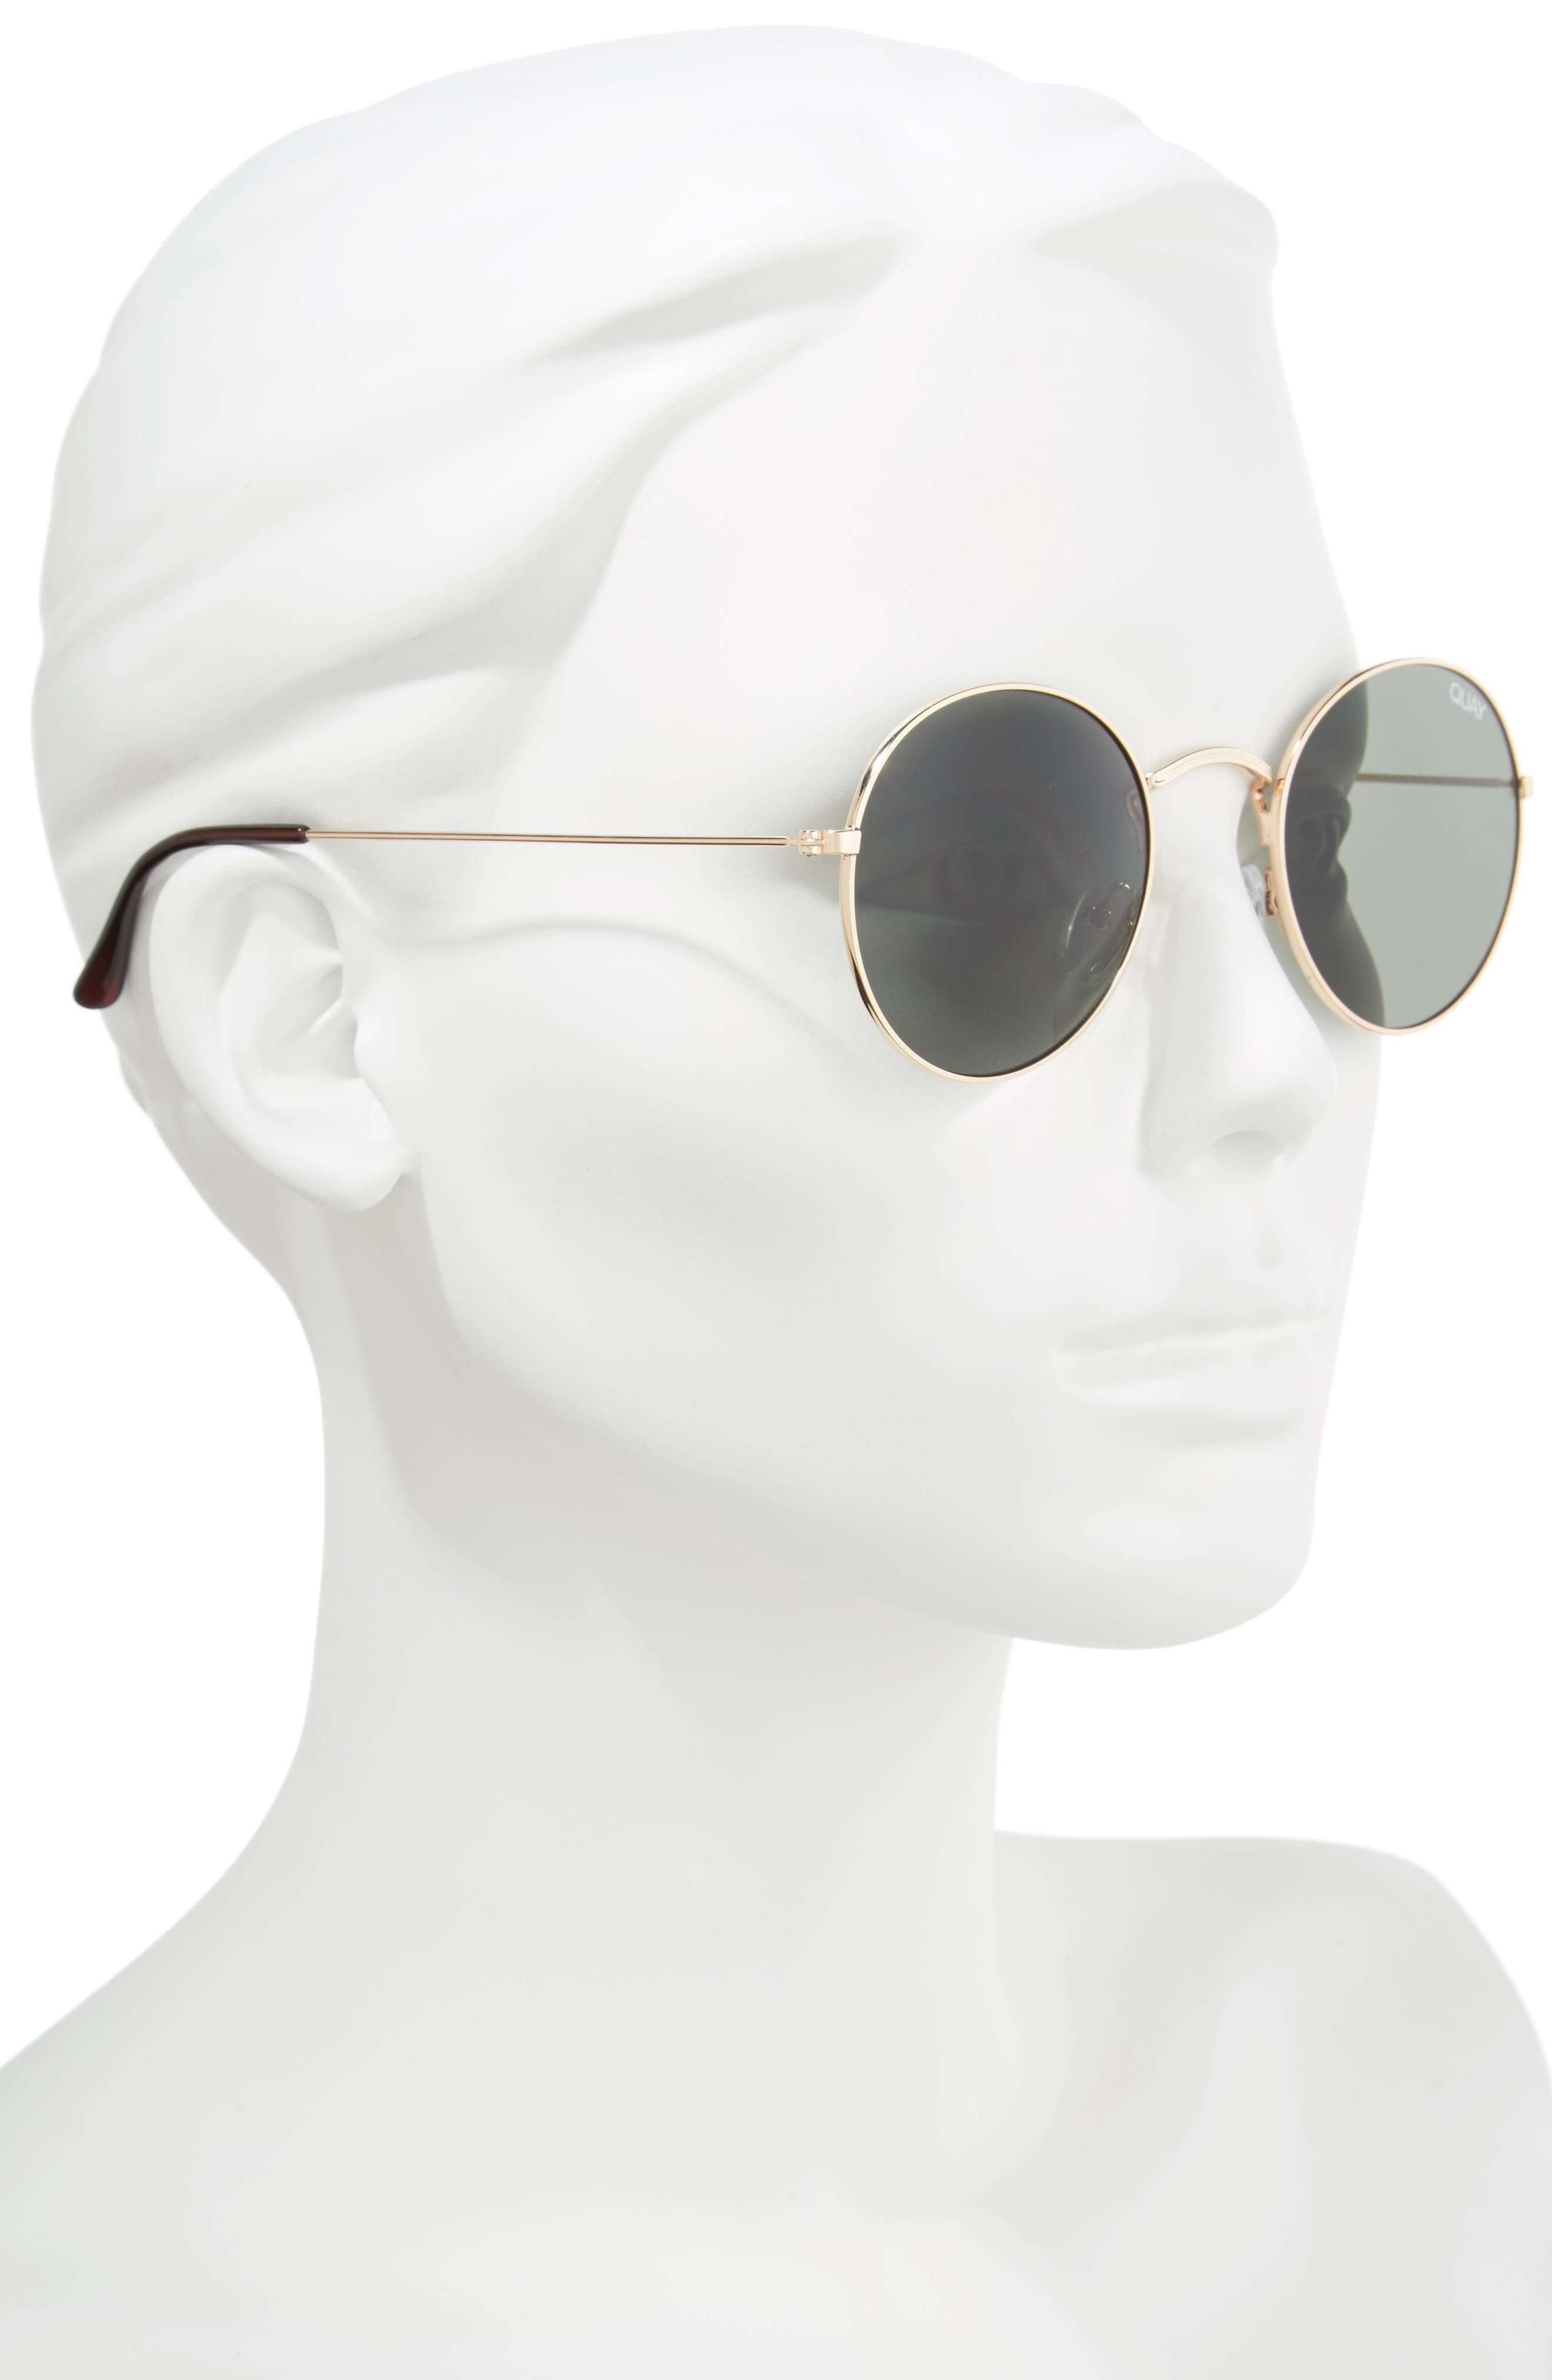 50mm Mod Star Round Sunglasses,                             Alternate thumbnail 2, color,                             Gold/ Green